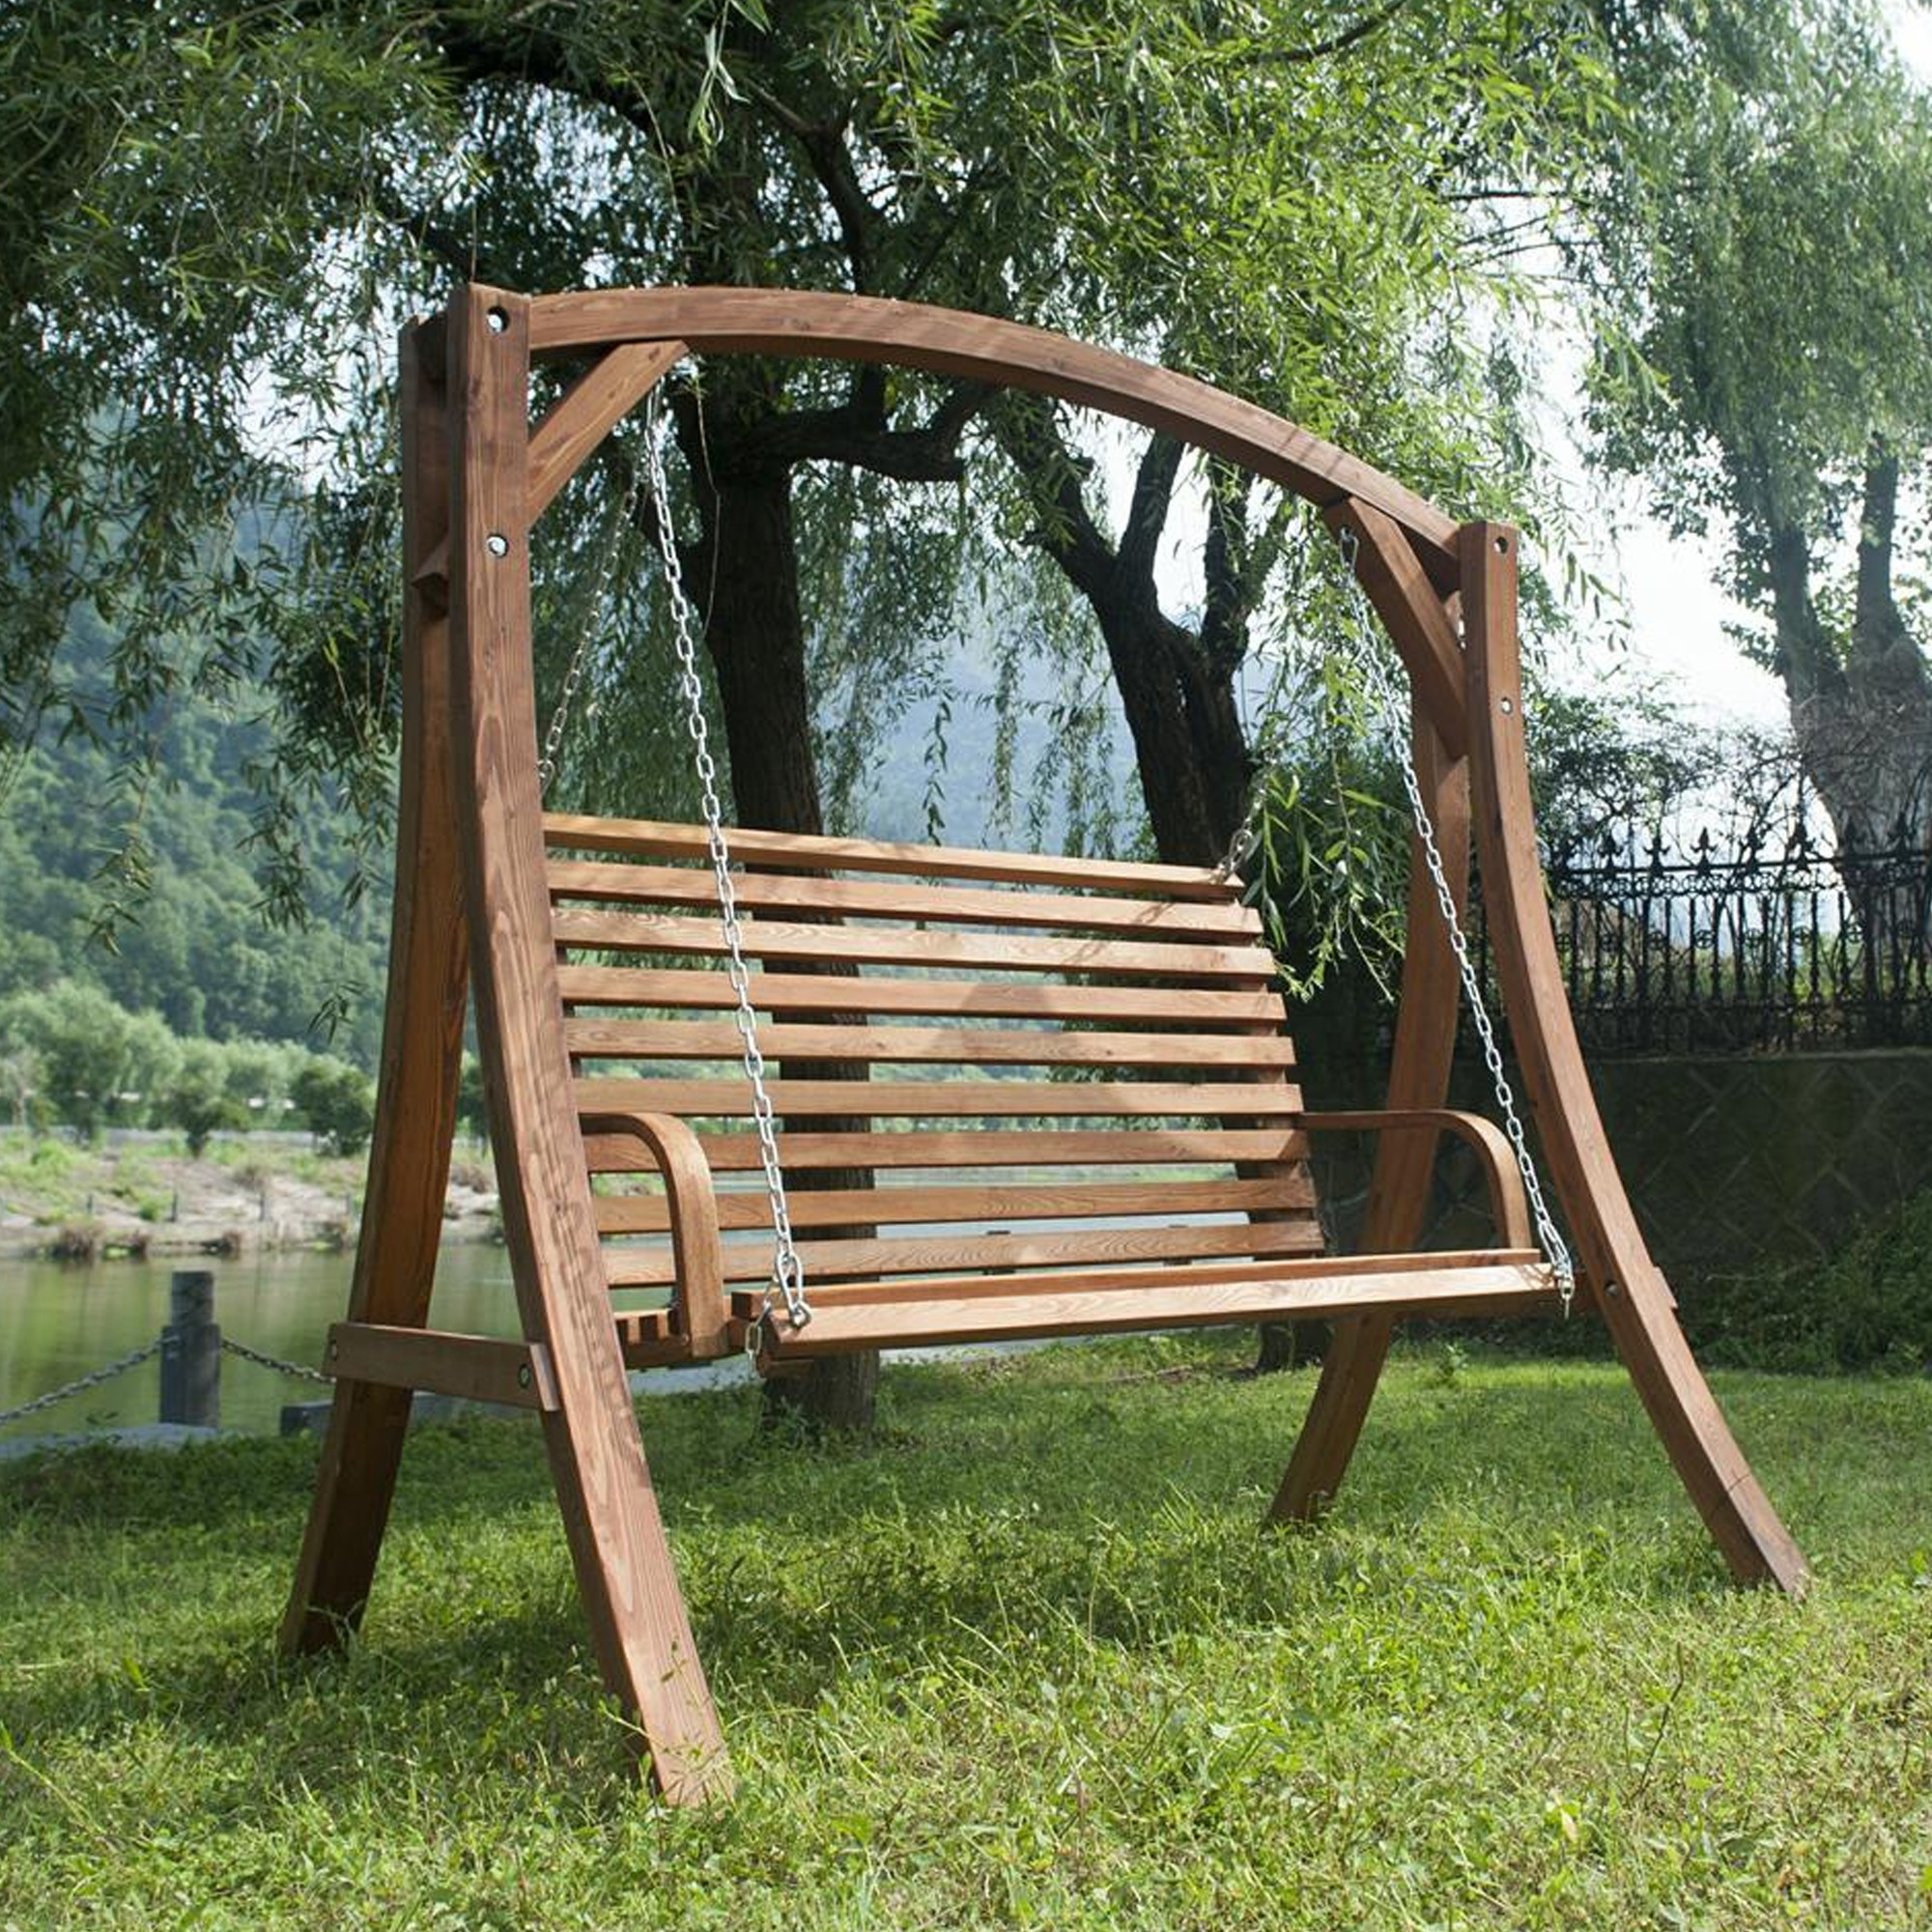 Amazing Awesome Wooden Garden Swings for Adults AID0I wooden garden swings for adults